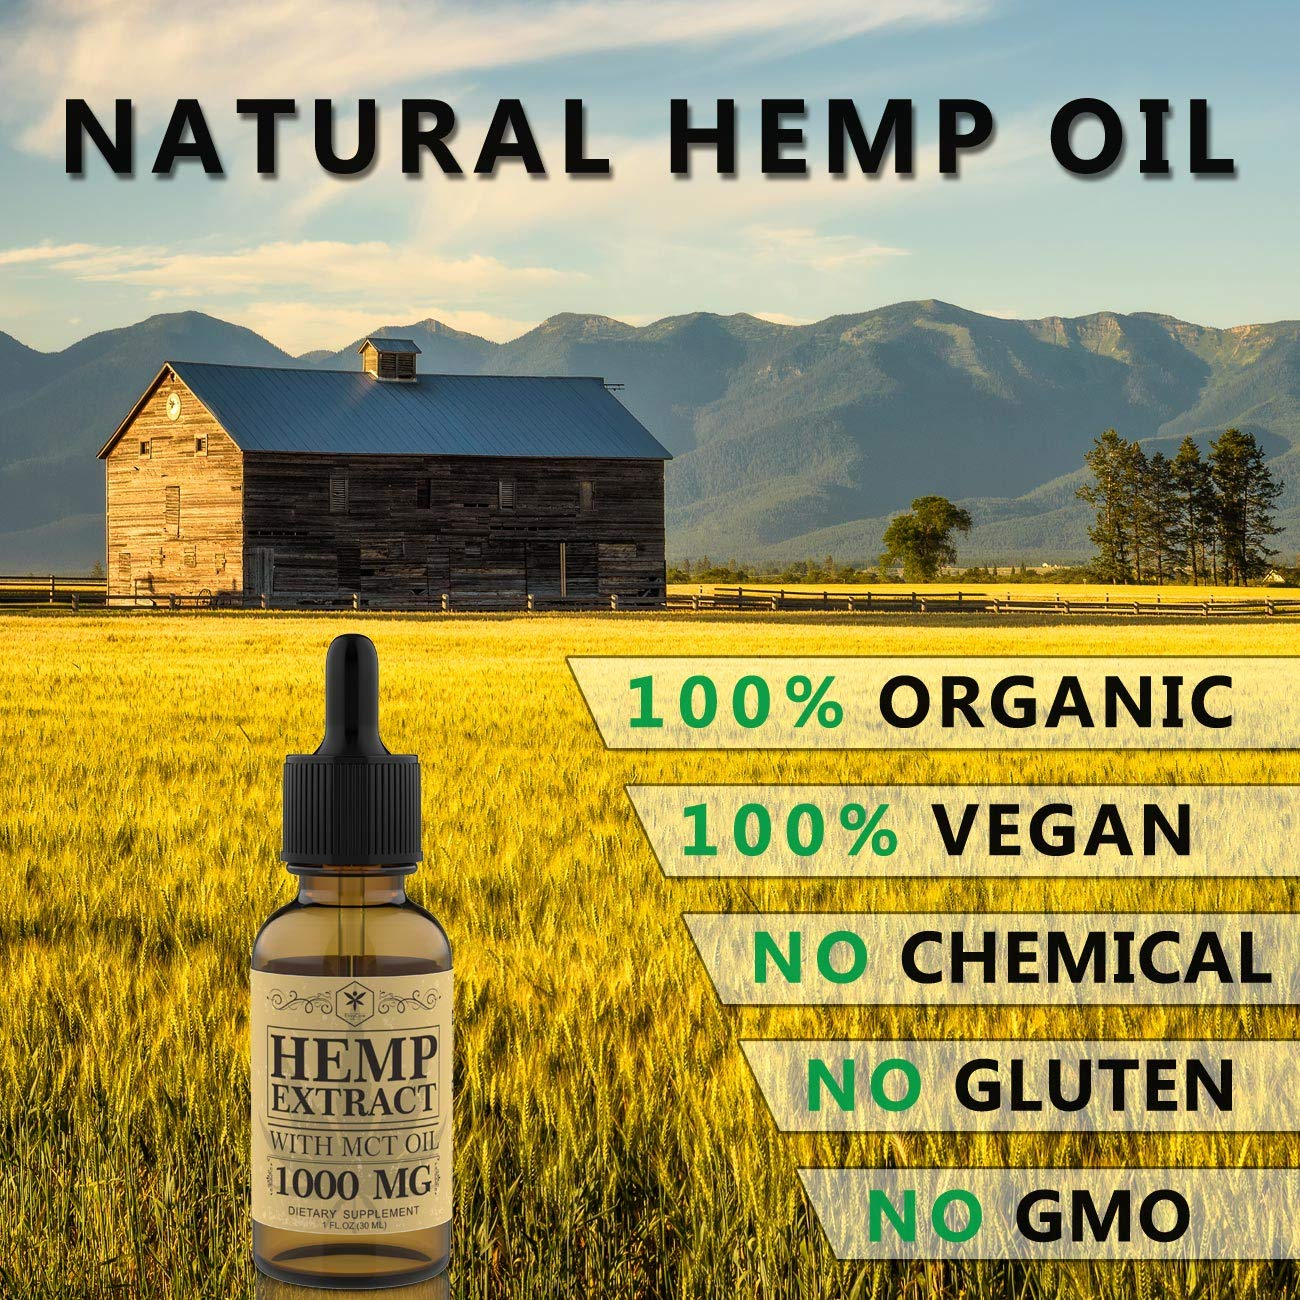 Hemp Oil Tincture 1000mg for Pain Relief, Stress and Anxiety Relief, Better Sleep - Organic Hemp Extract, 100% Natural Hemp Oil Extract with MCT Oil - Made in USA